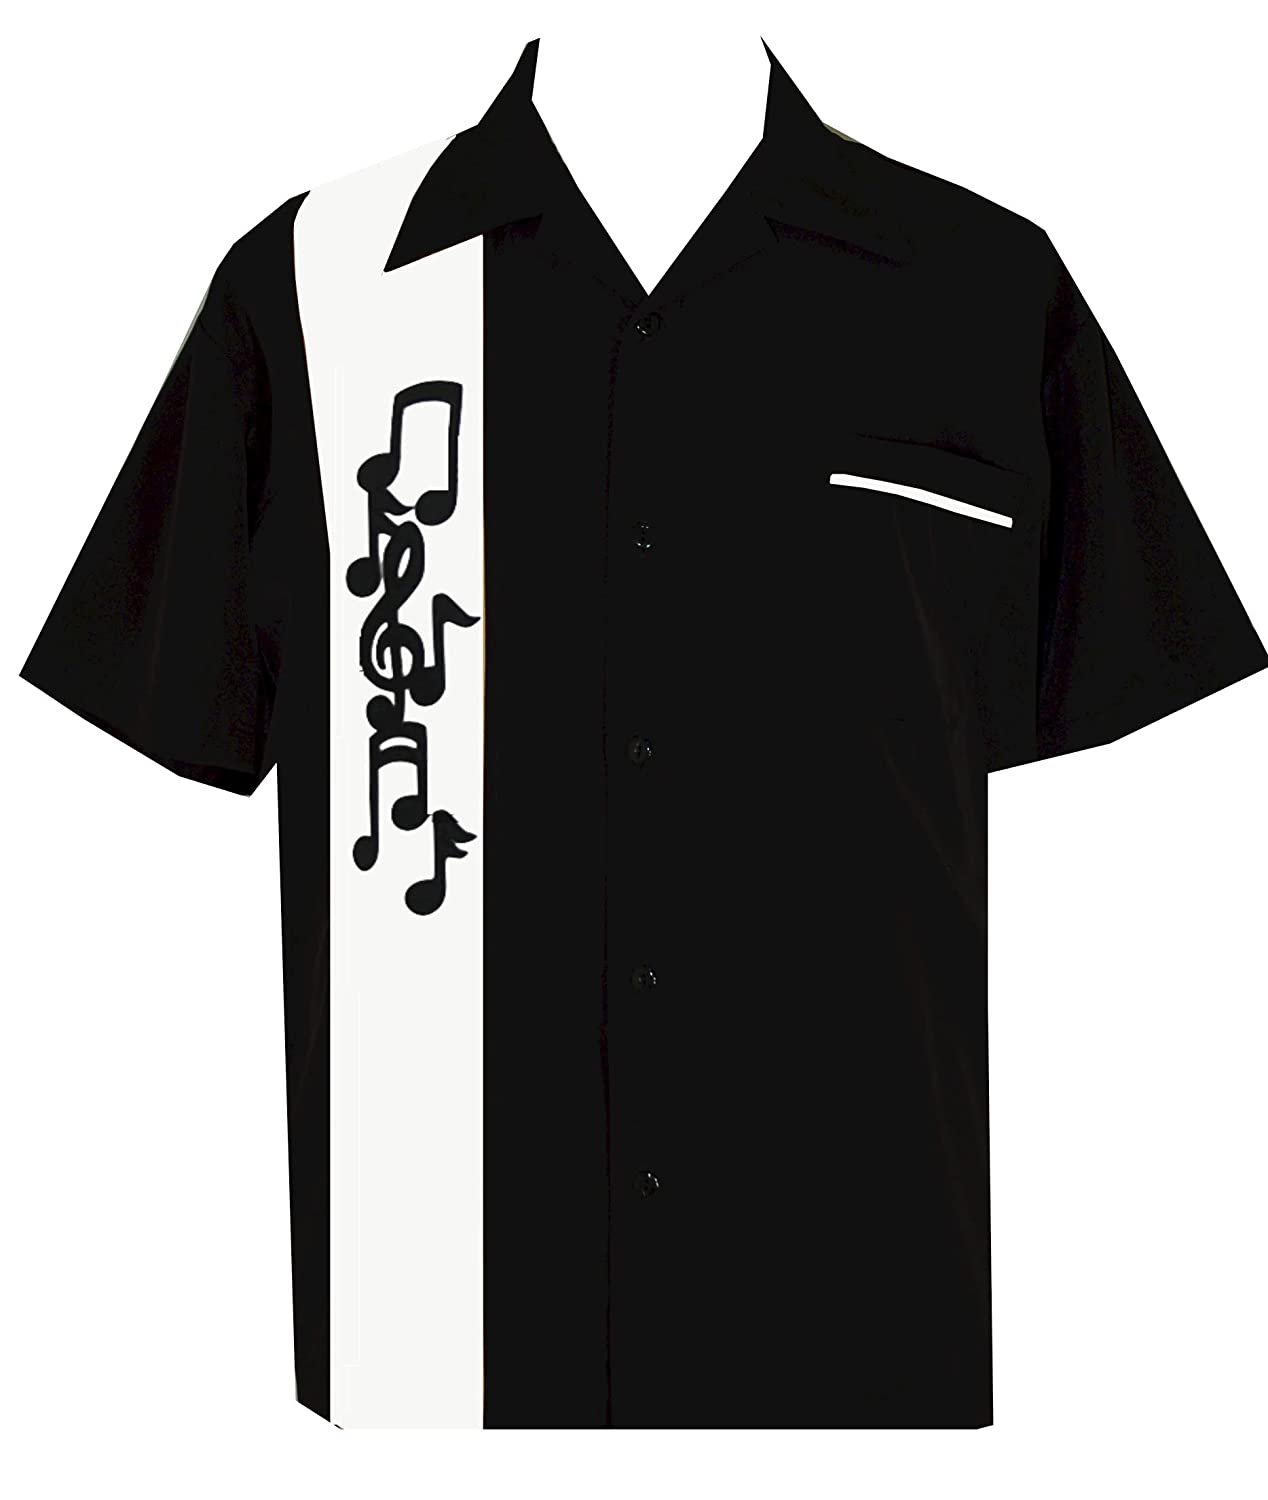 Mens Vintage Shirts – Casual, Dress, T-shirts, Polos BeRetro Musicans Music Note Black Shirt $70.95 AT vintagedancer.com